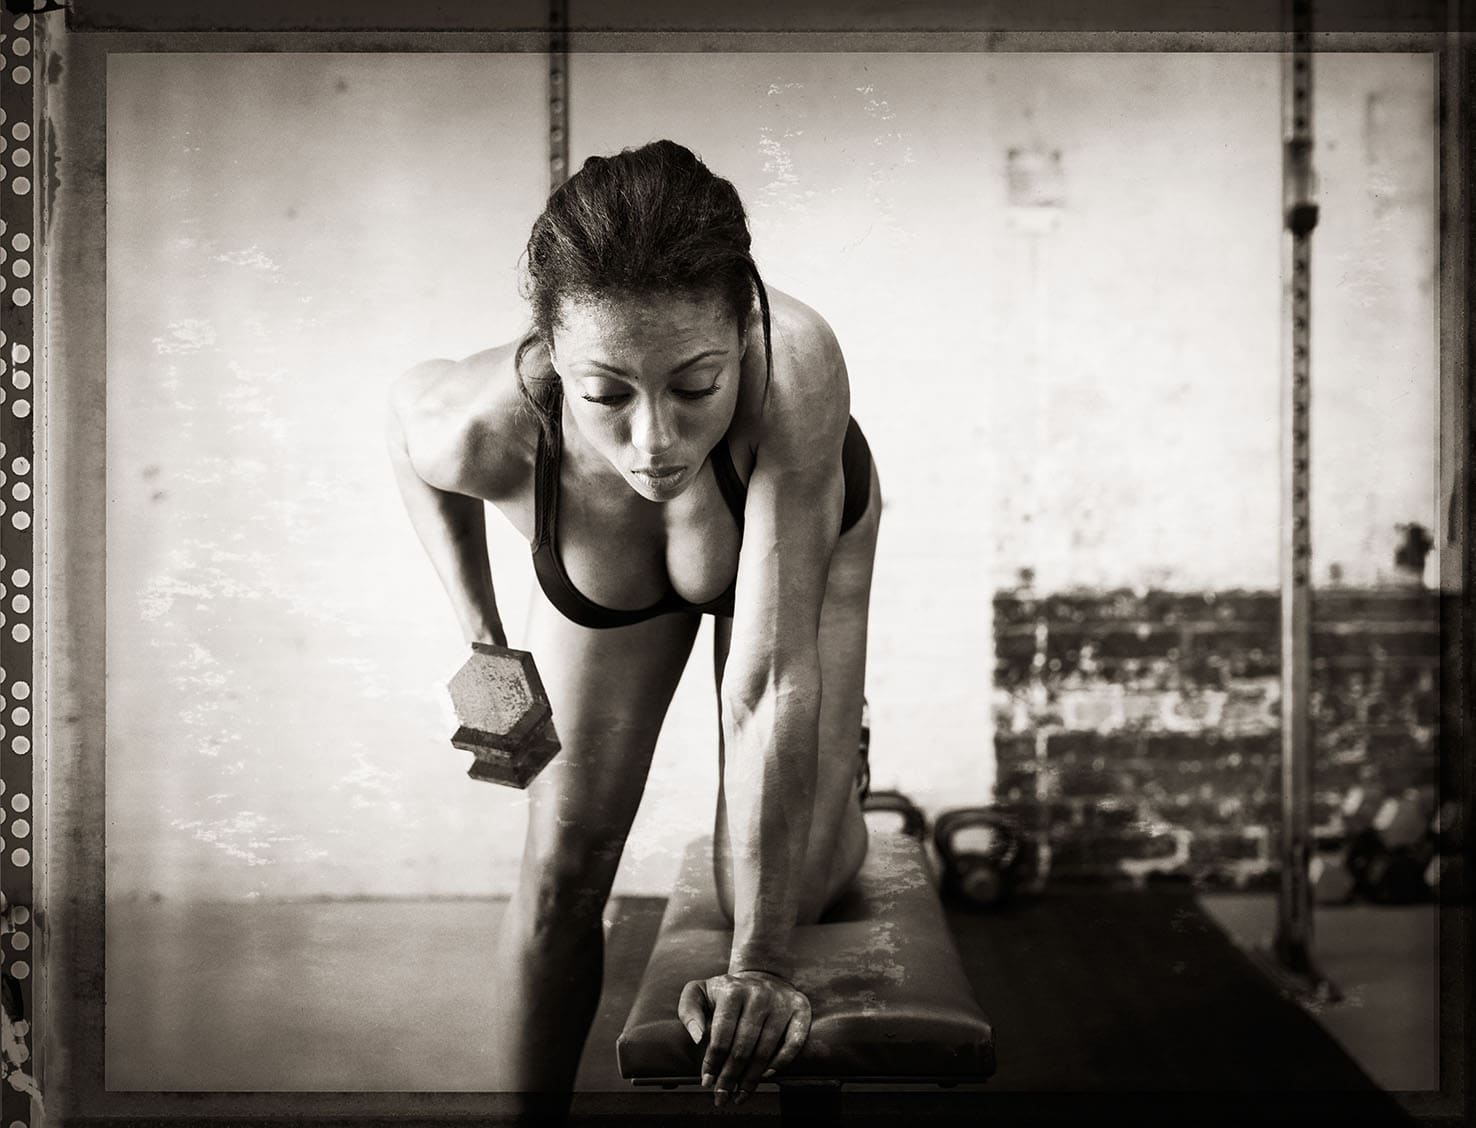 Black and White Front Image Athlete Nicole Harris Lifting Weights Two Piece Workout Apparel Chanel